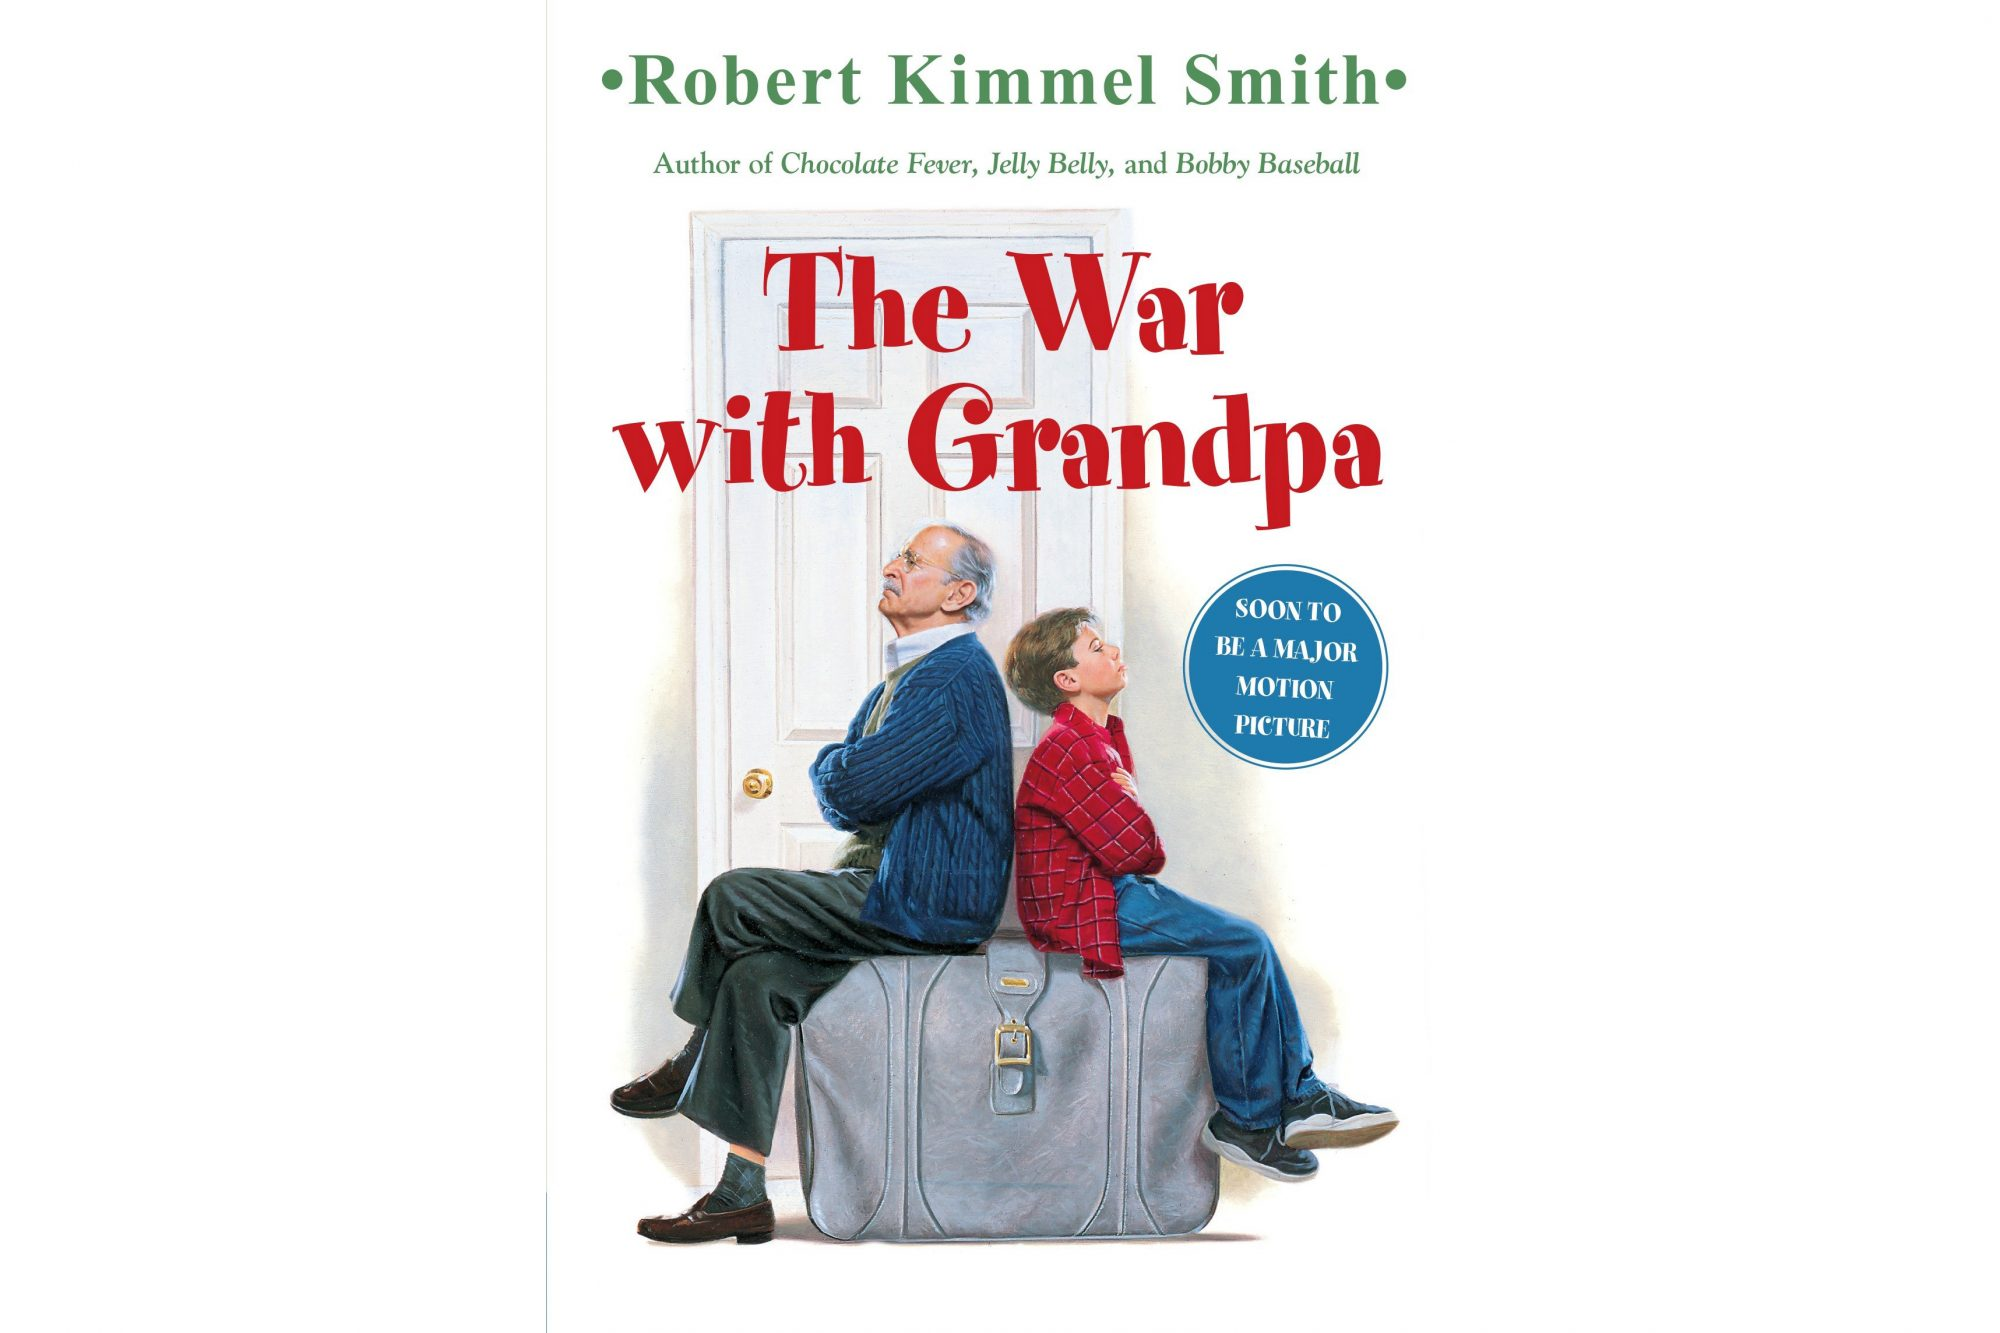 The War With Grandpa, by Robert Kimmel Smith